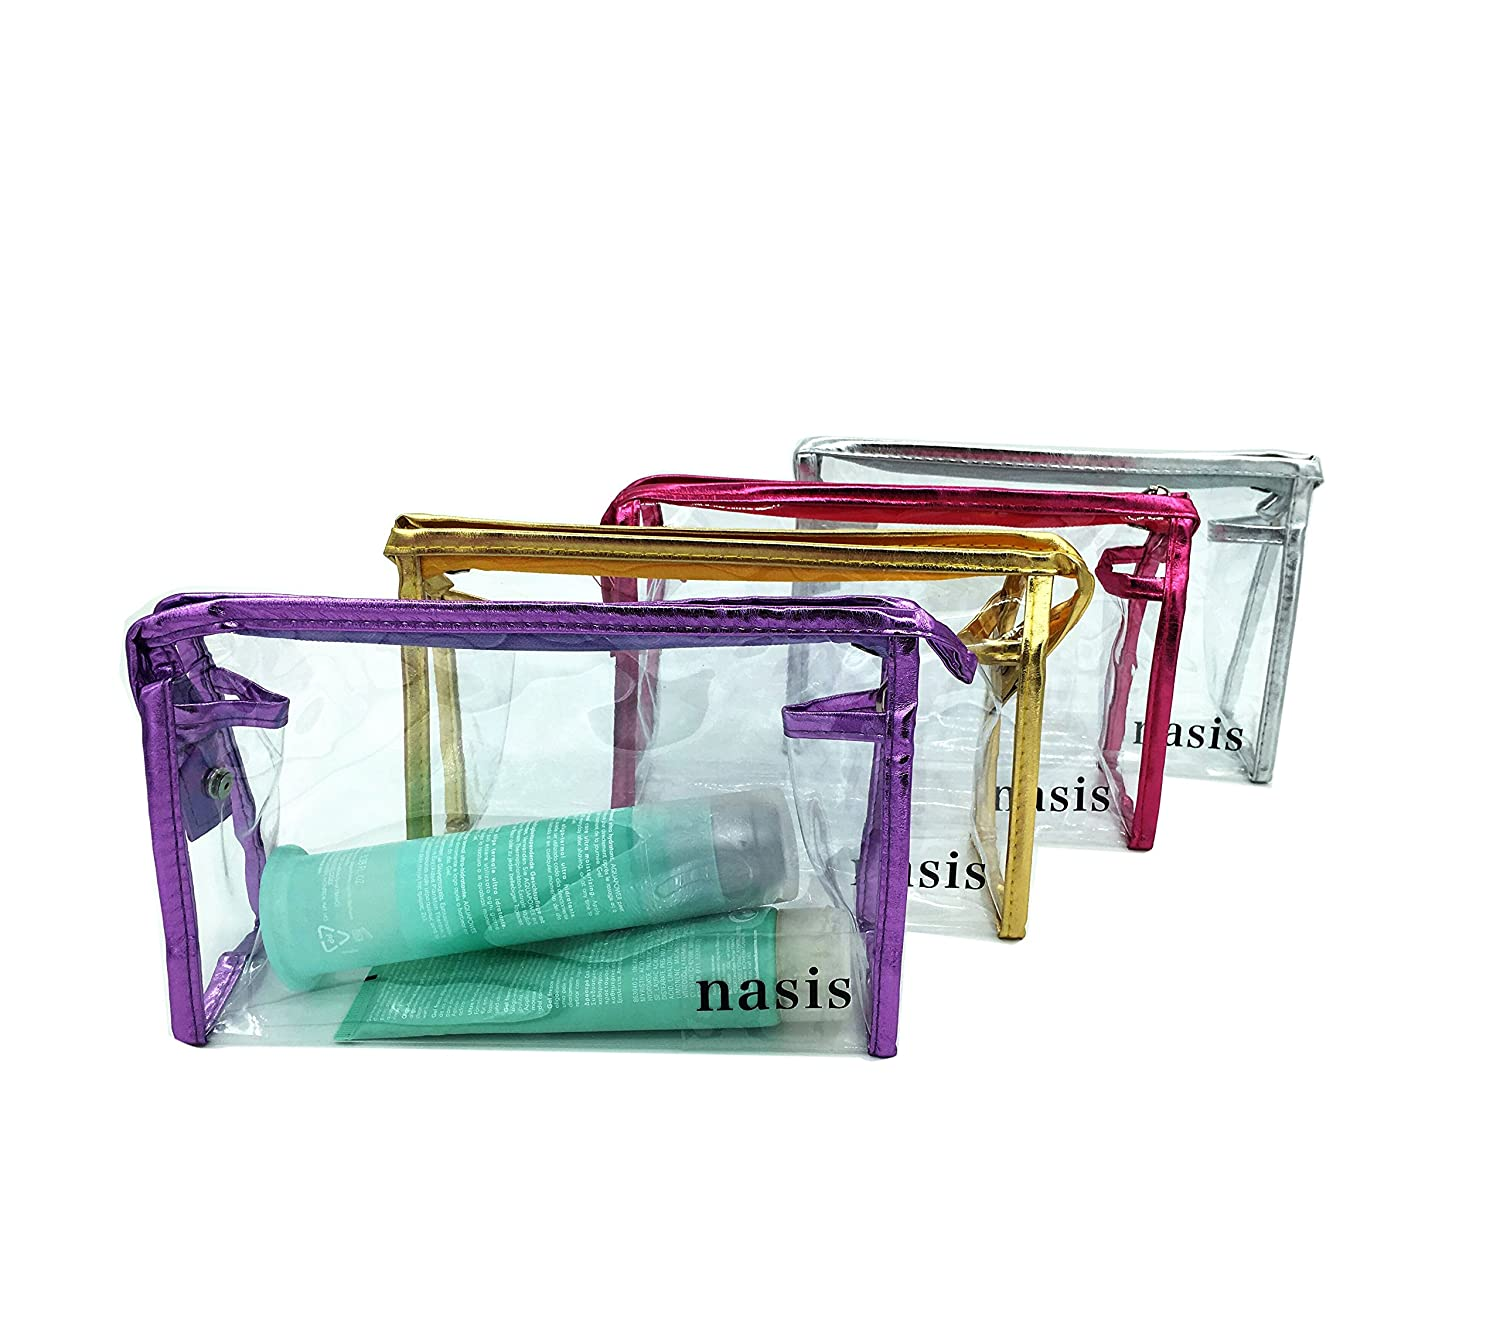 Nasis Multi functional Portable Waterproof Clear Cosmetic Makeup Bag Case Travel Organizer Toiletry Wash Bag AH8007